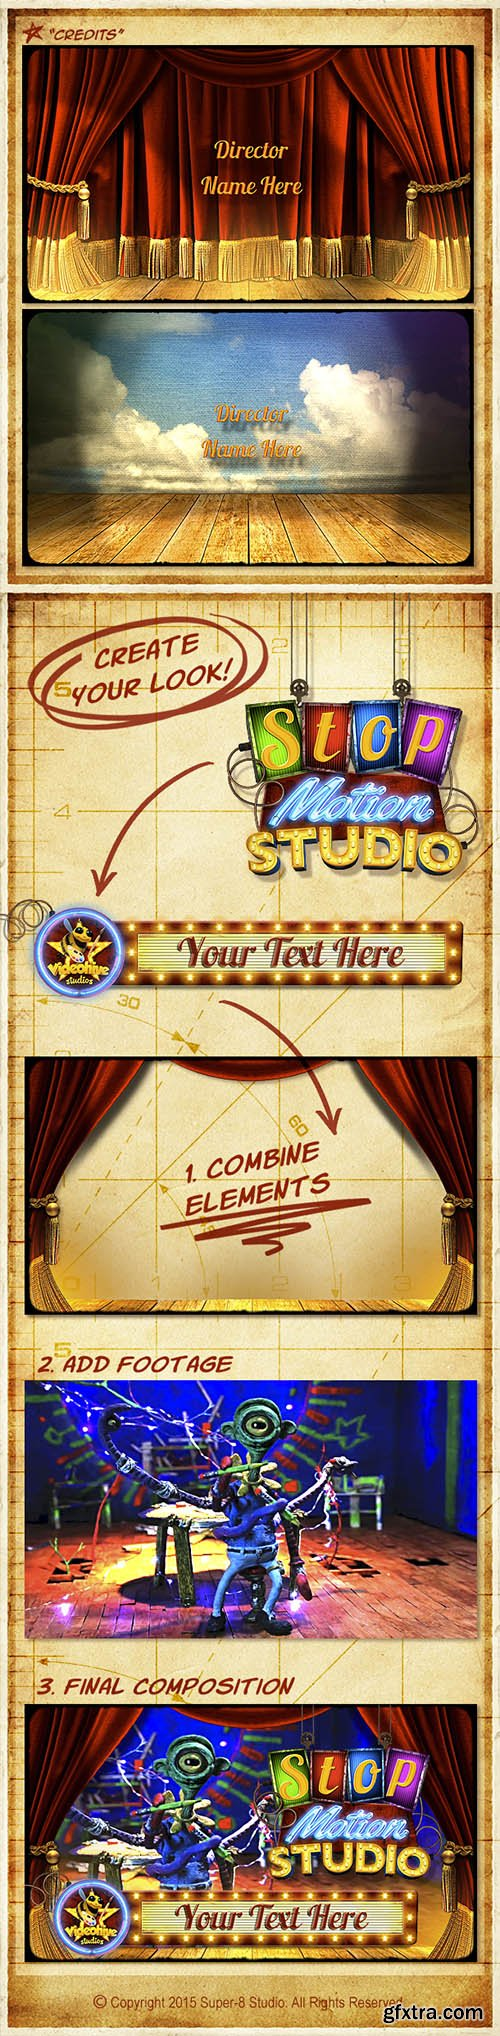 Videohive Creative Studio Promo Package 10089462